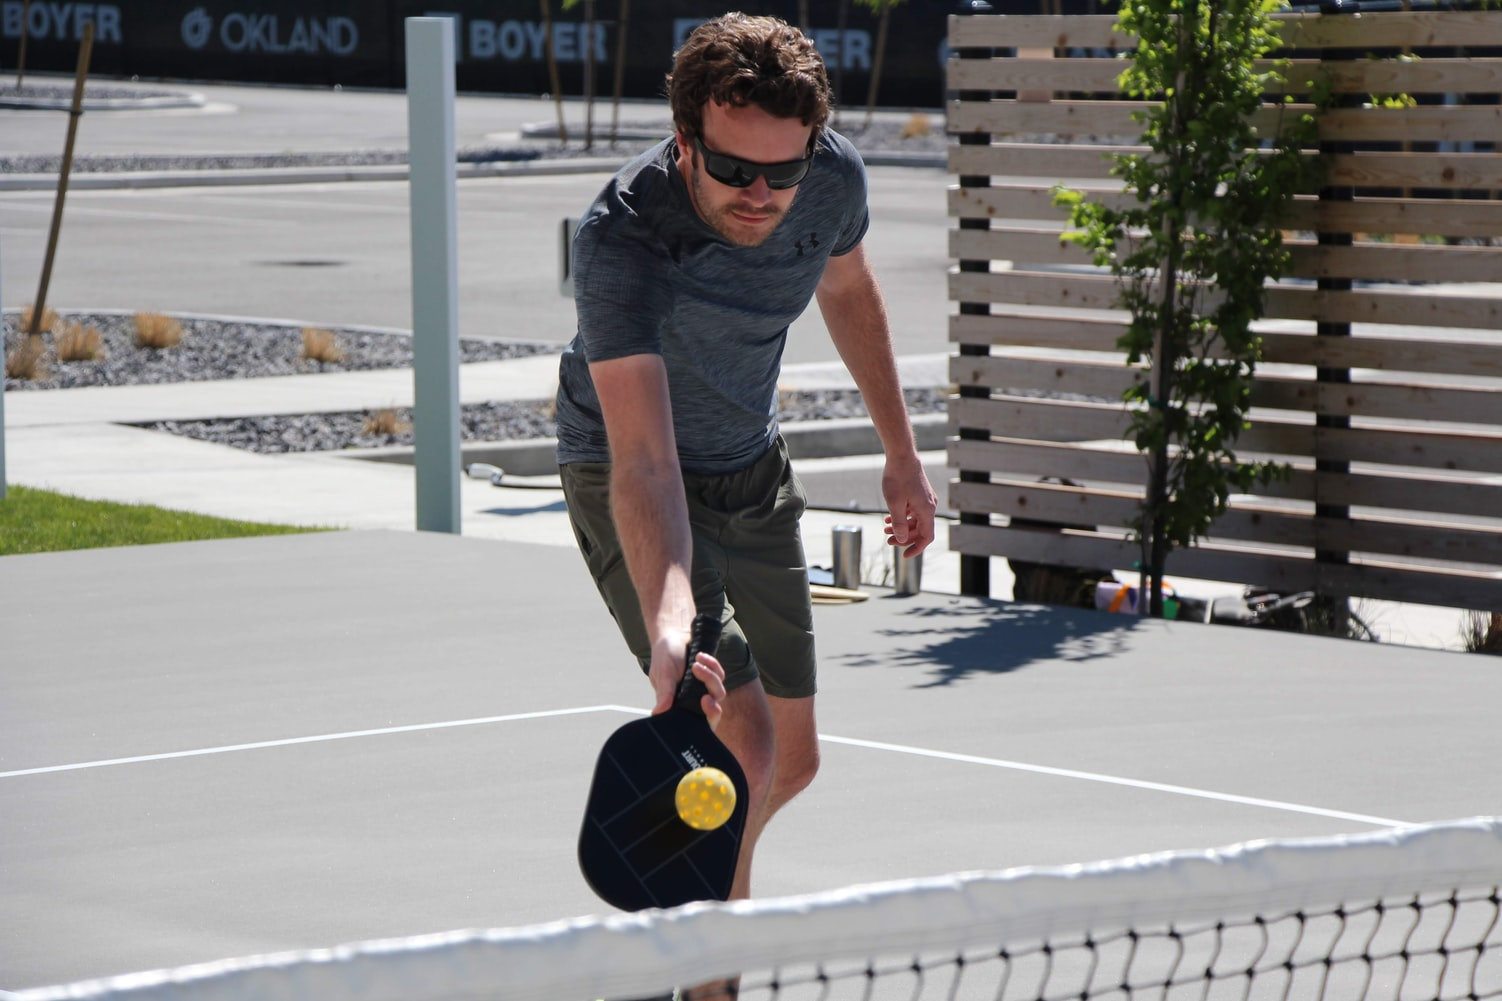 Man wearing a shirt playing pickleball